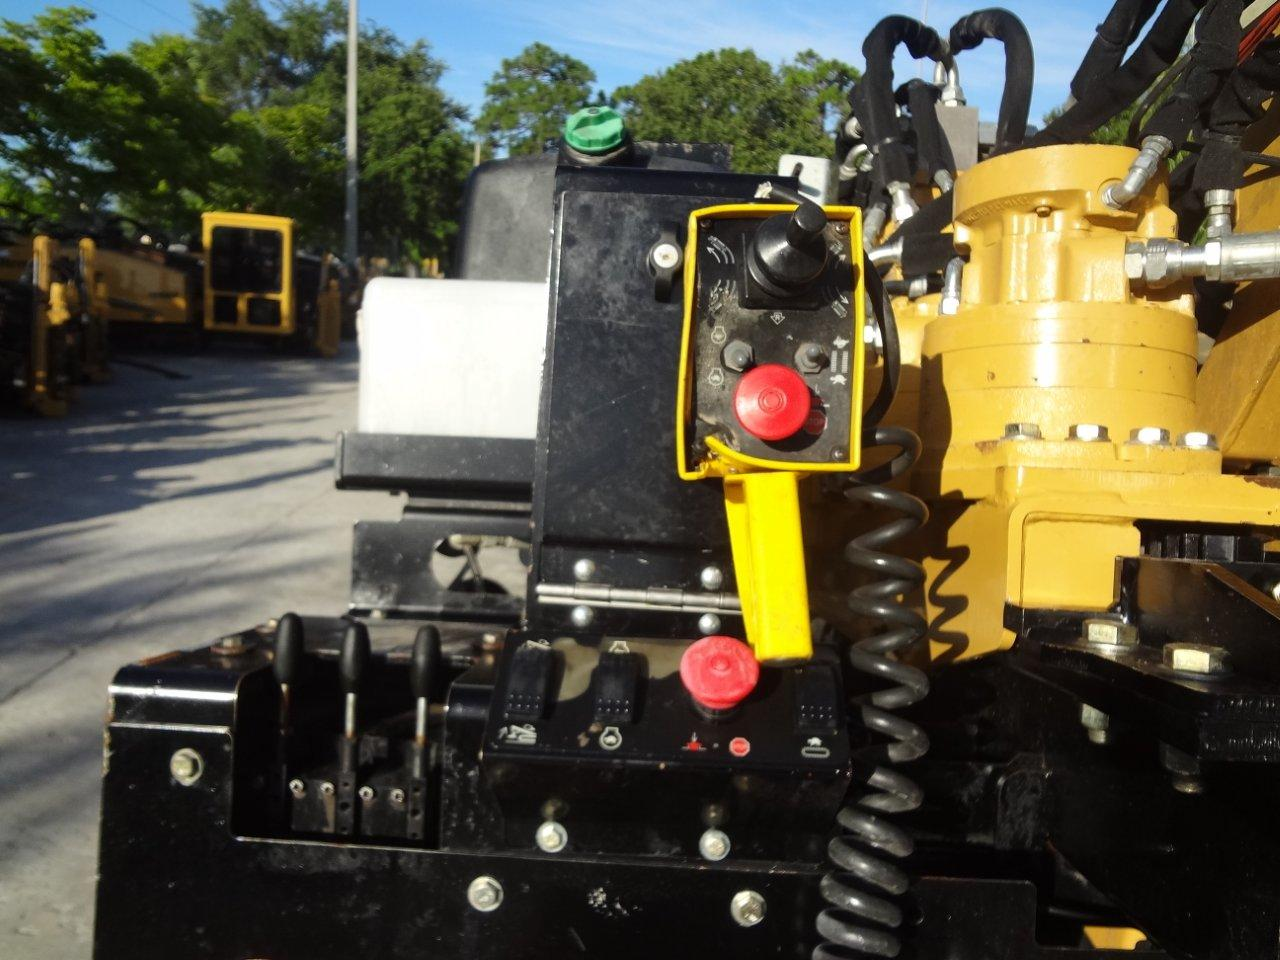 Packed with great features, this 2010 Vermeer directional boring machine has Aplex water pump, rack & pinion, MFD display in dash, and is RATT capable with optional drive pendant included.